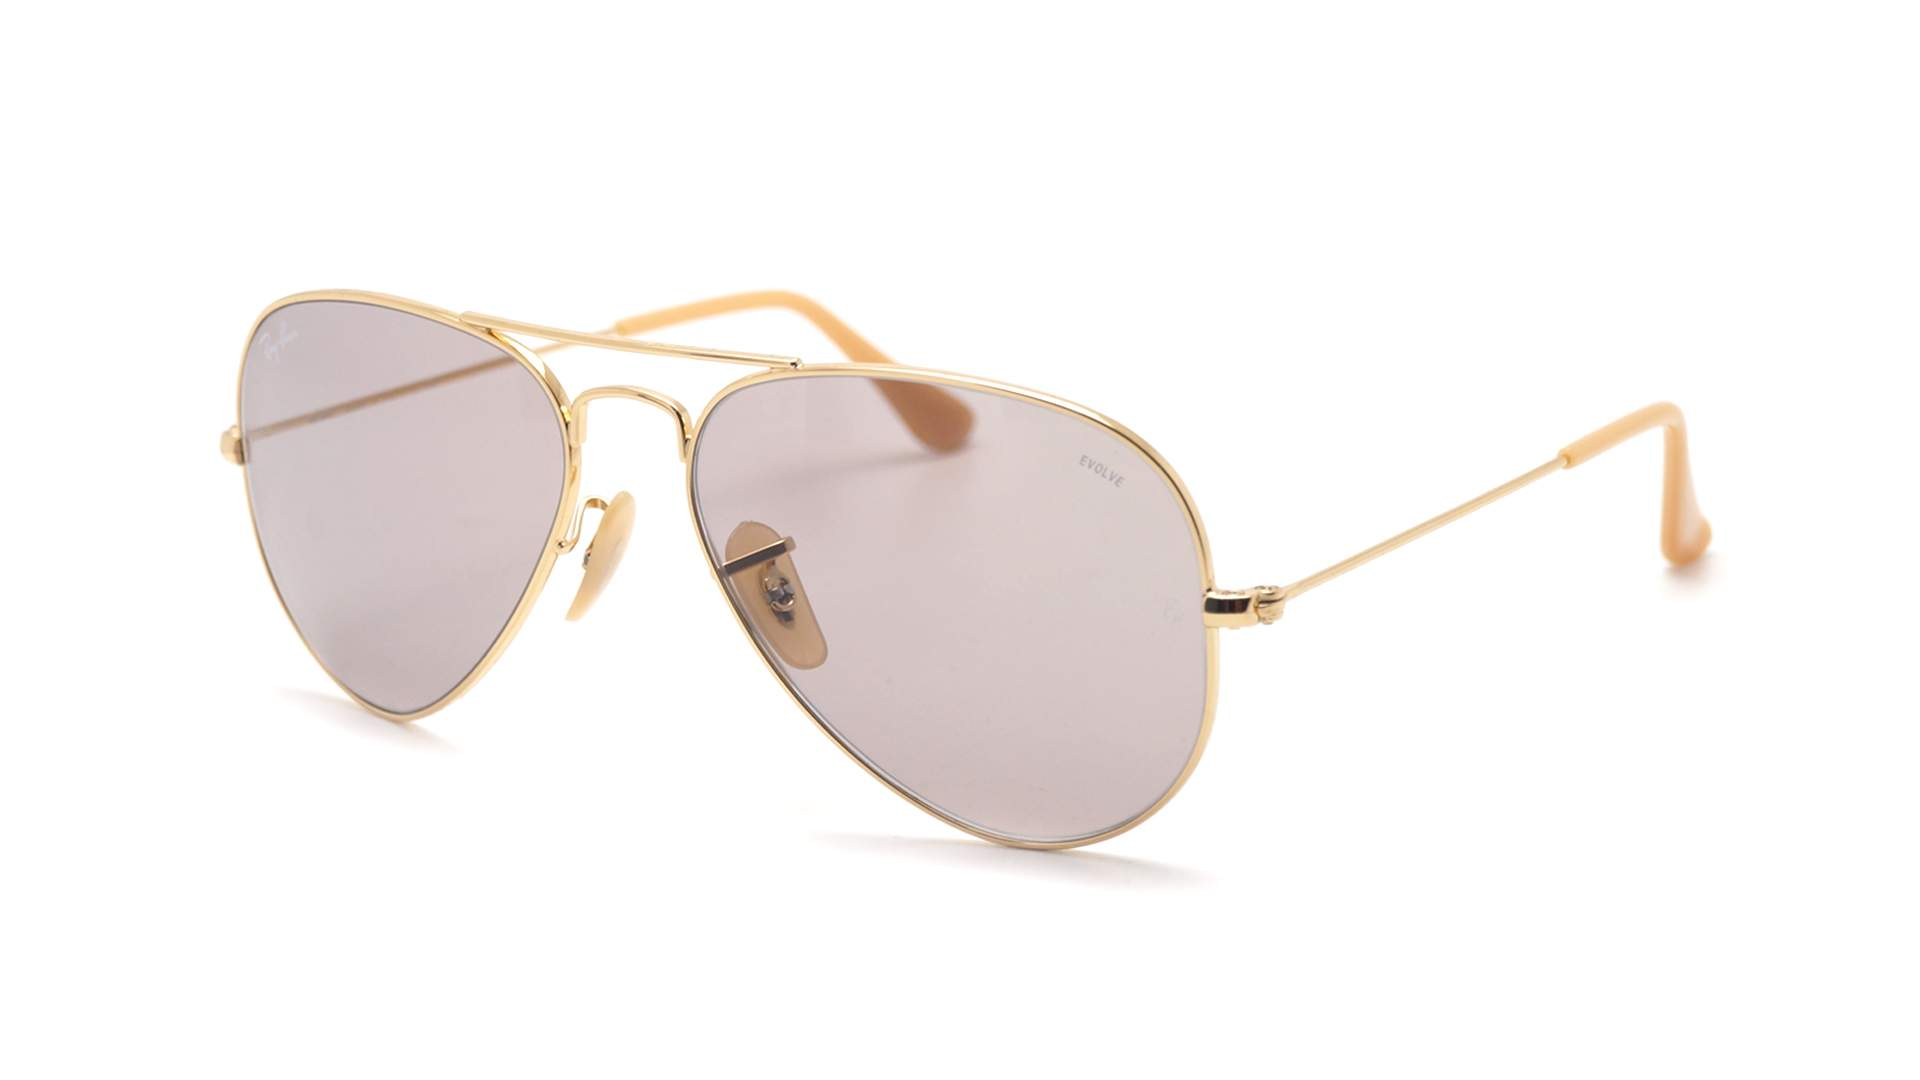 204a81ea6d4409 Lunettes de soleil Ray-Ban Aviator Evolve Or RB3025 9064 V8 55-14 Small  Photochromiques